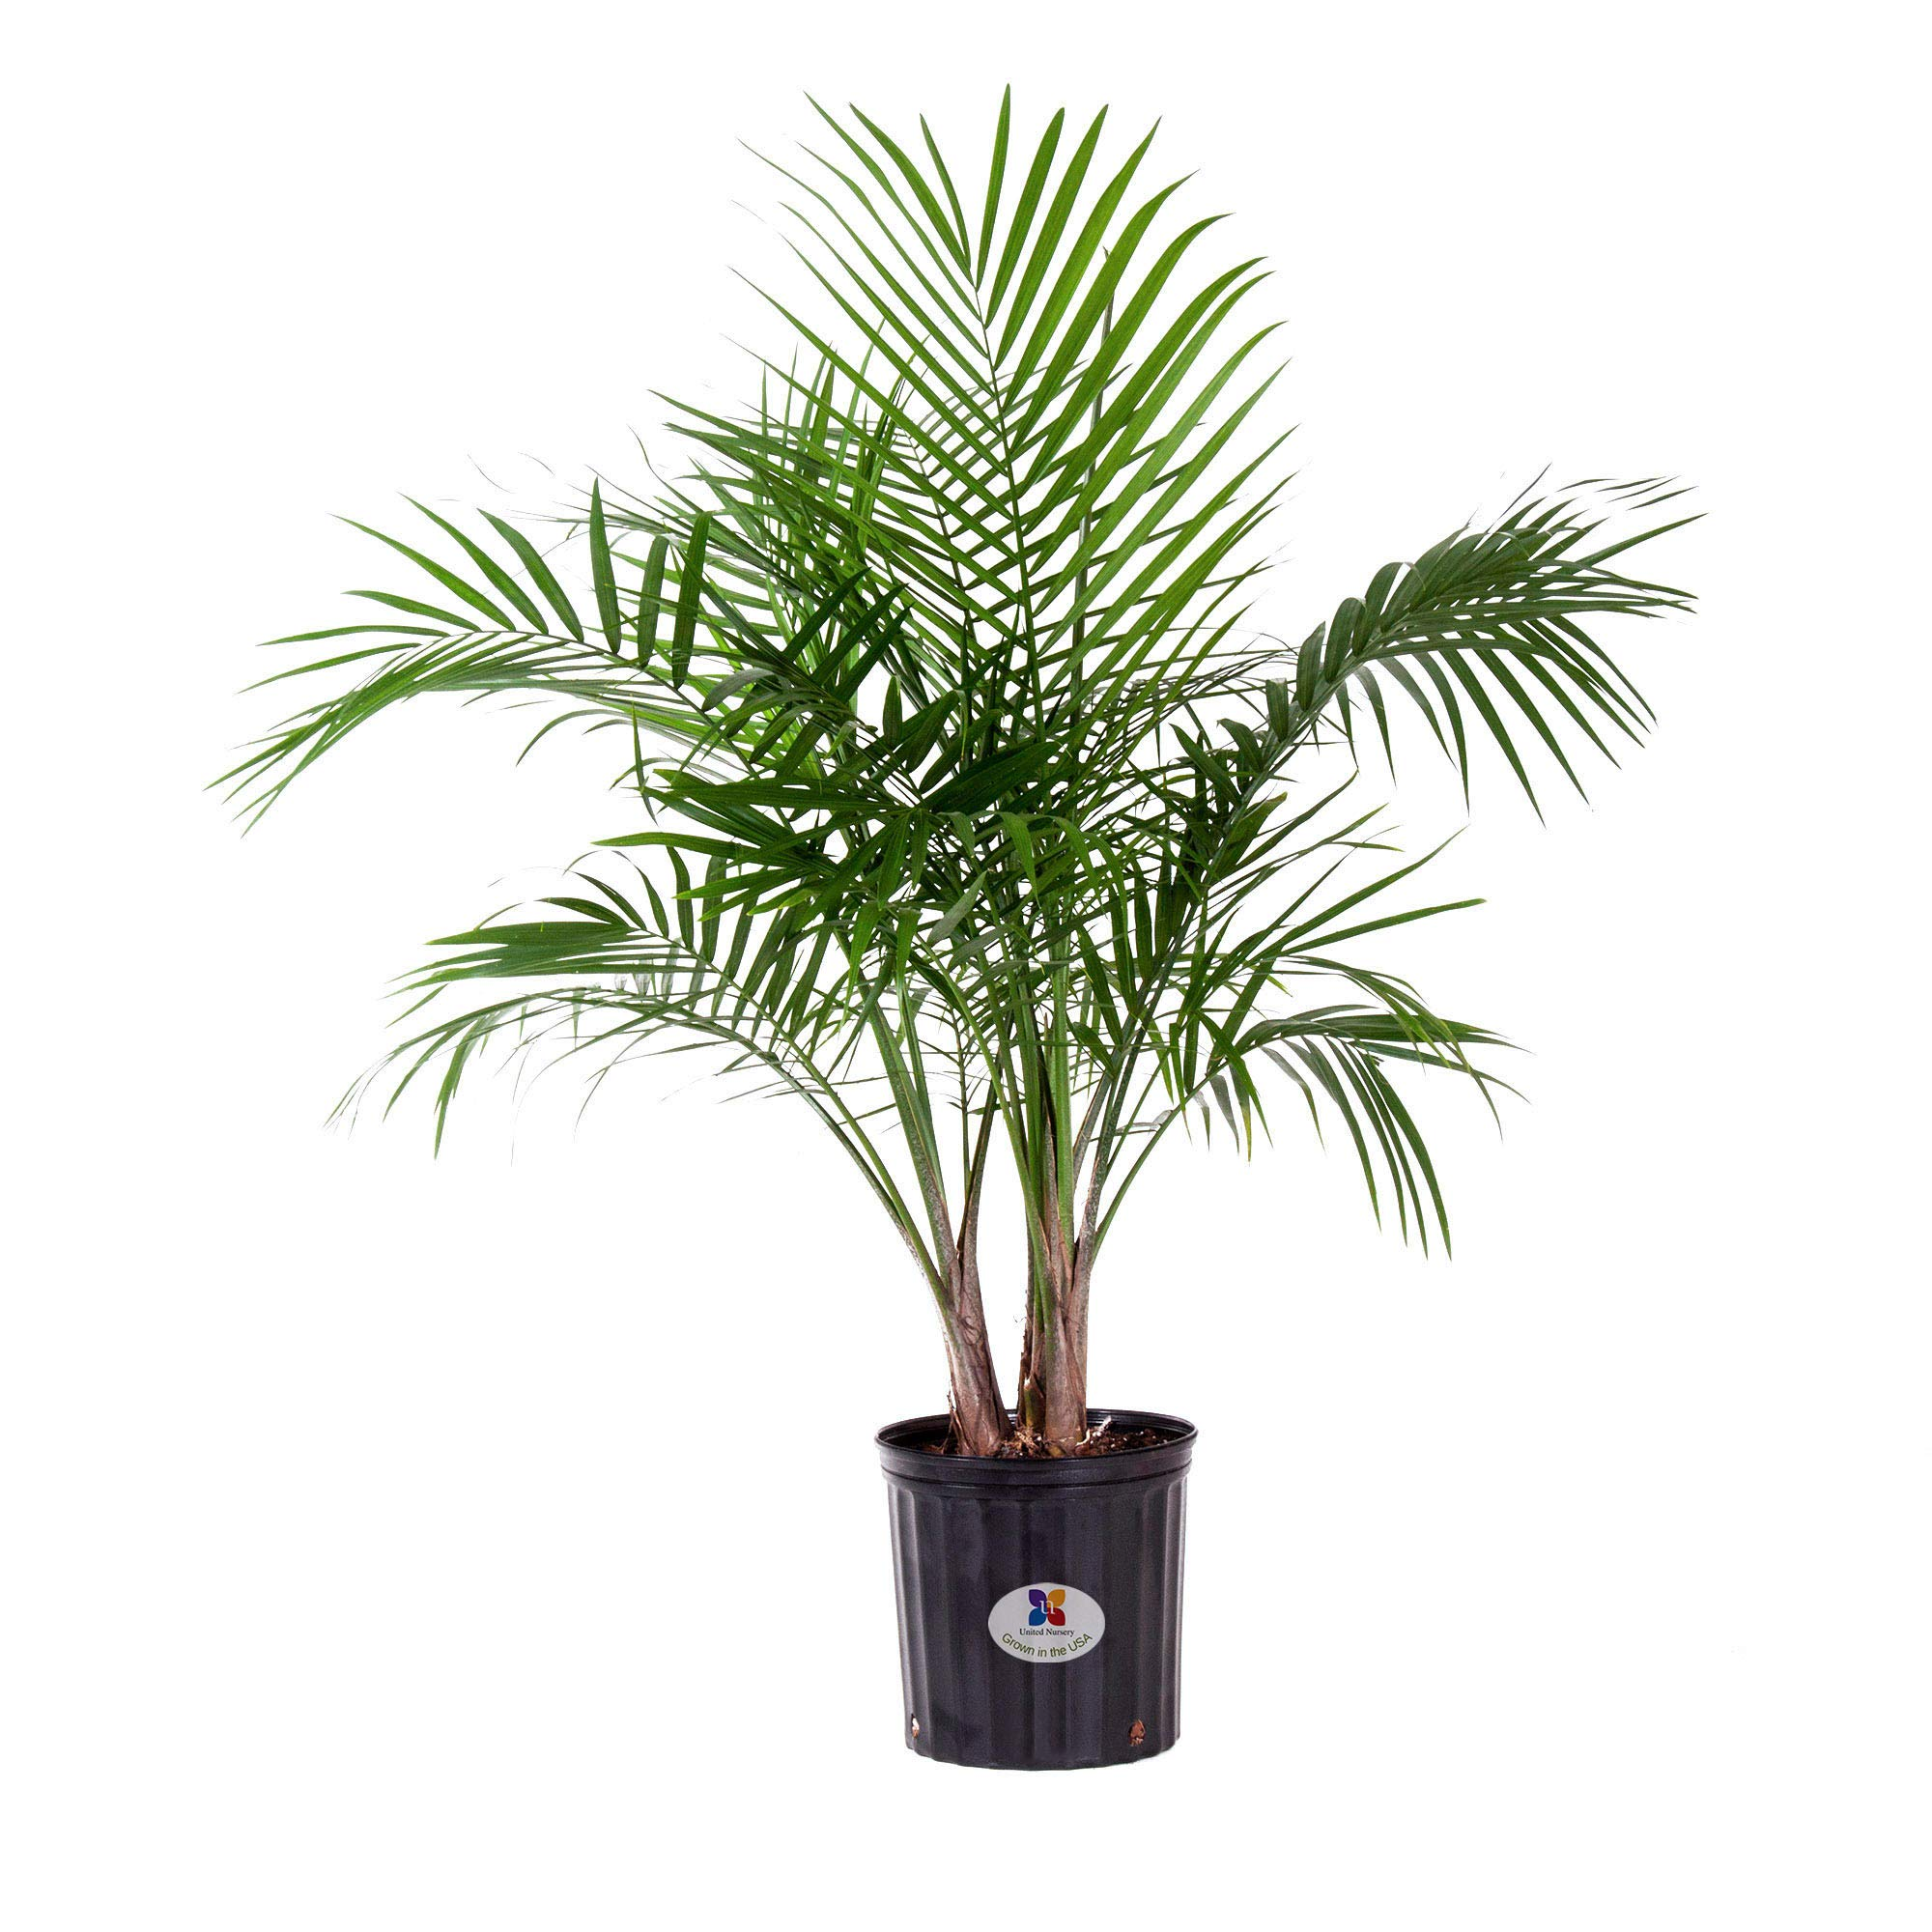 United Nursery Majesty Palm Tree, Live Indoor and Outdoor Plant 28-36'' Shipping Size. Shipped Fresh in Grower Pot from Our Florida Farm by United Nursery